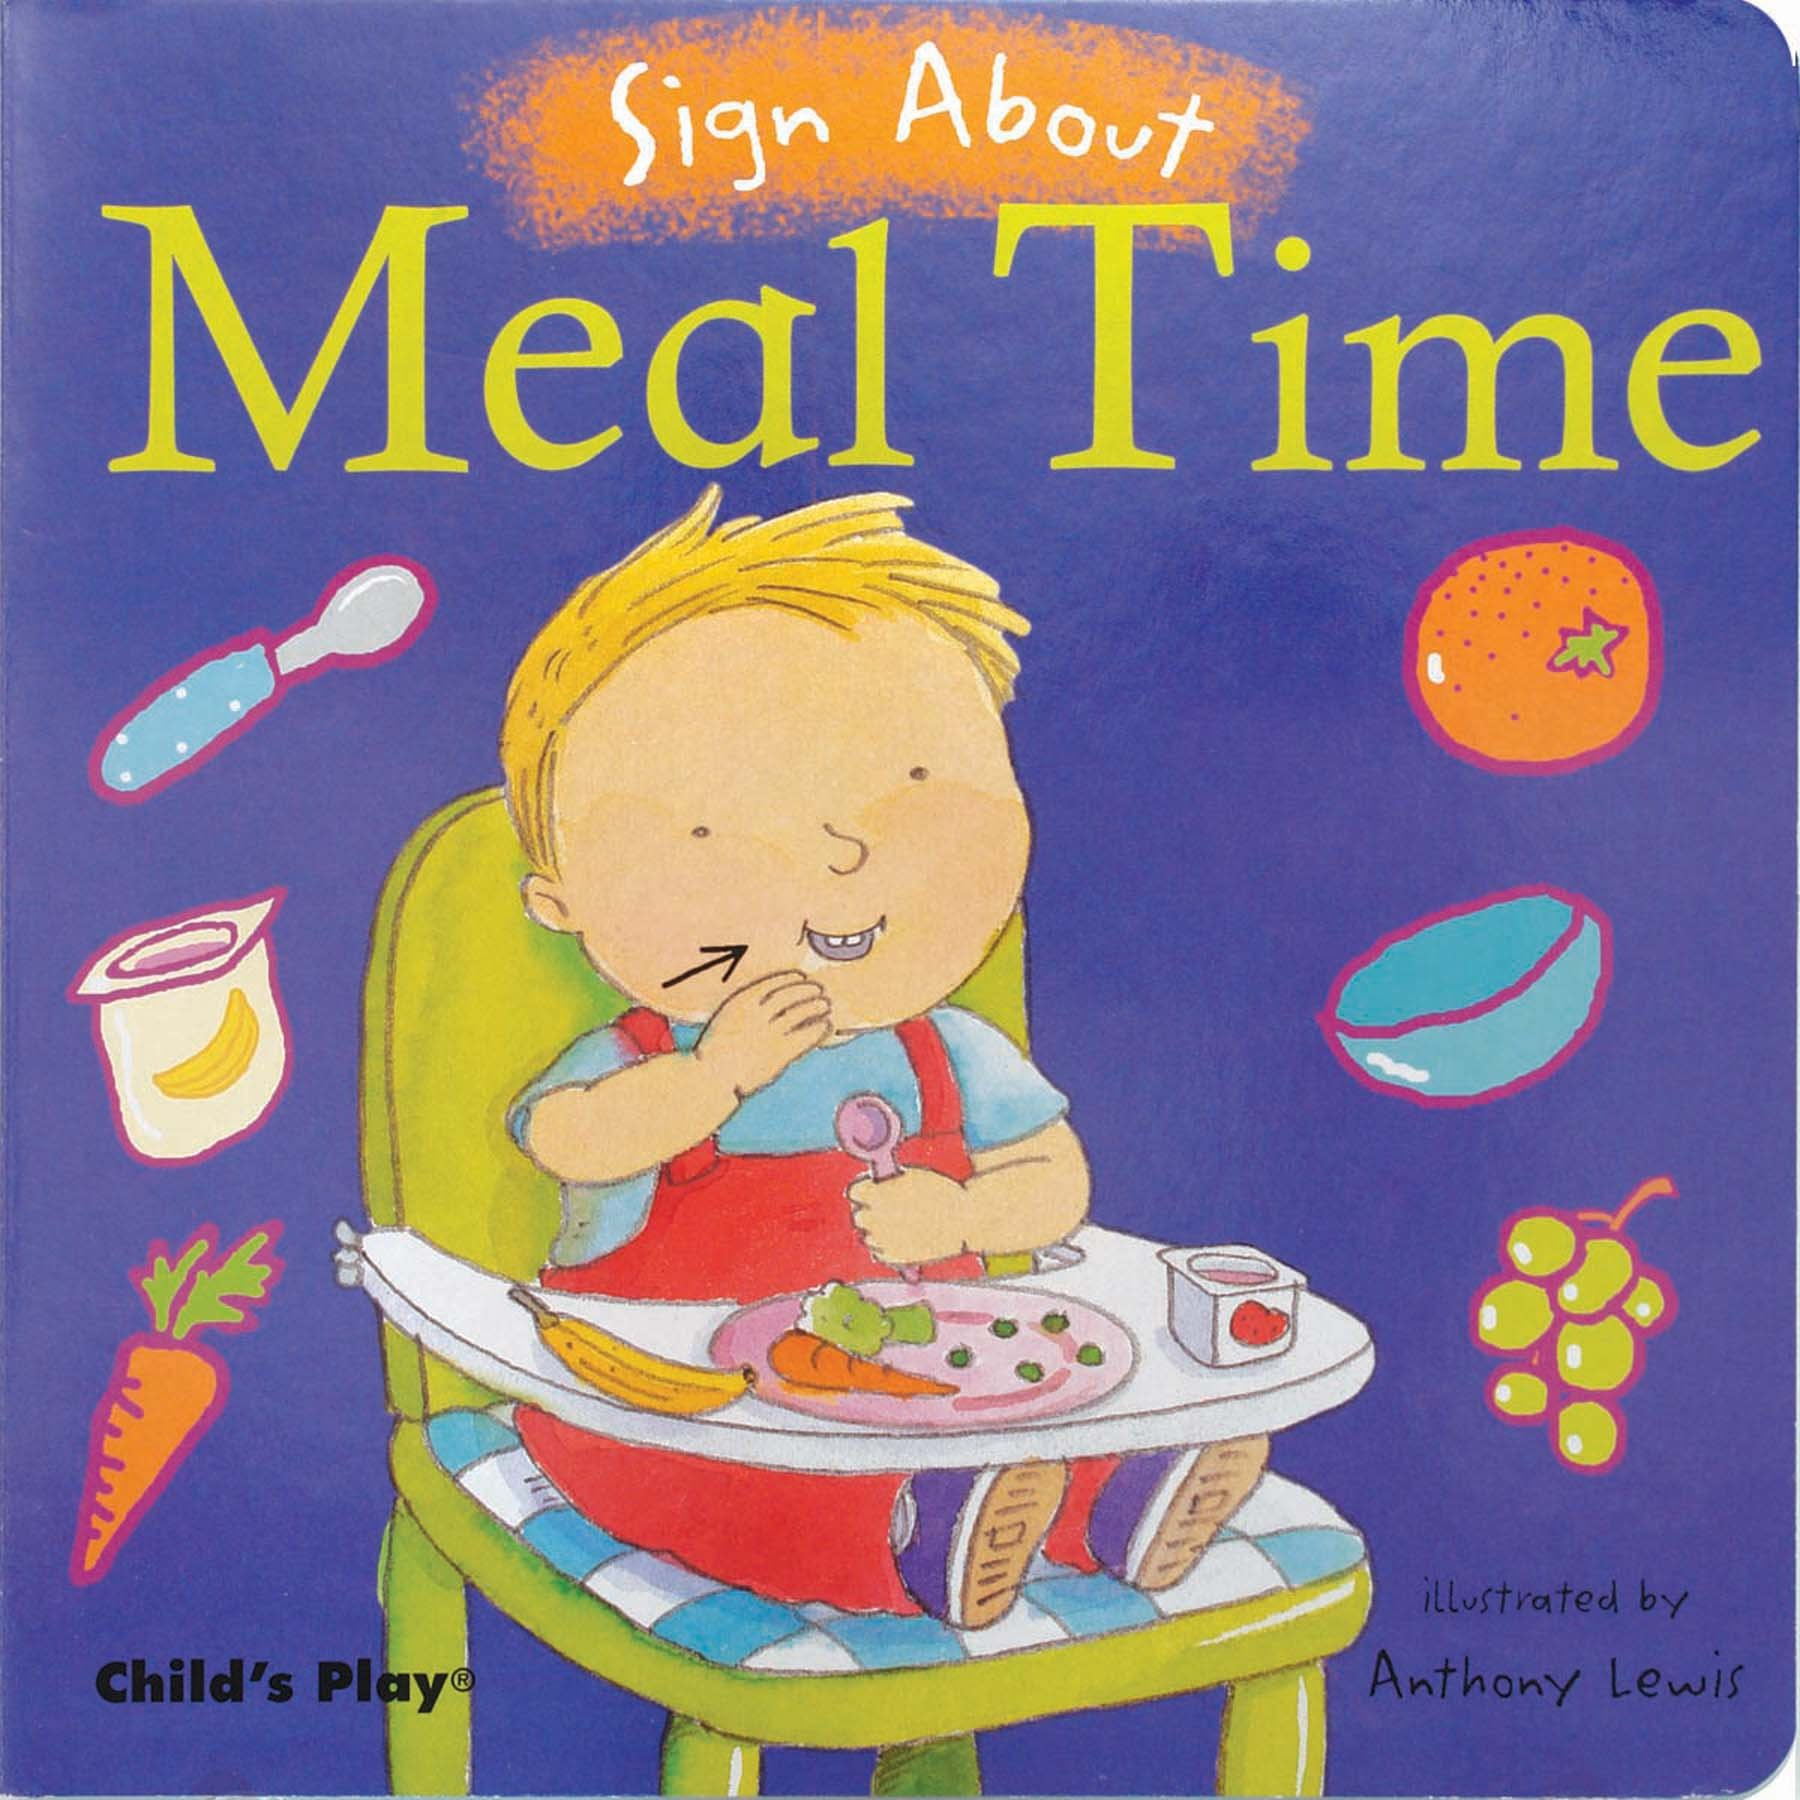 Sign About Meal Time